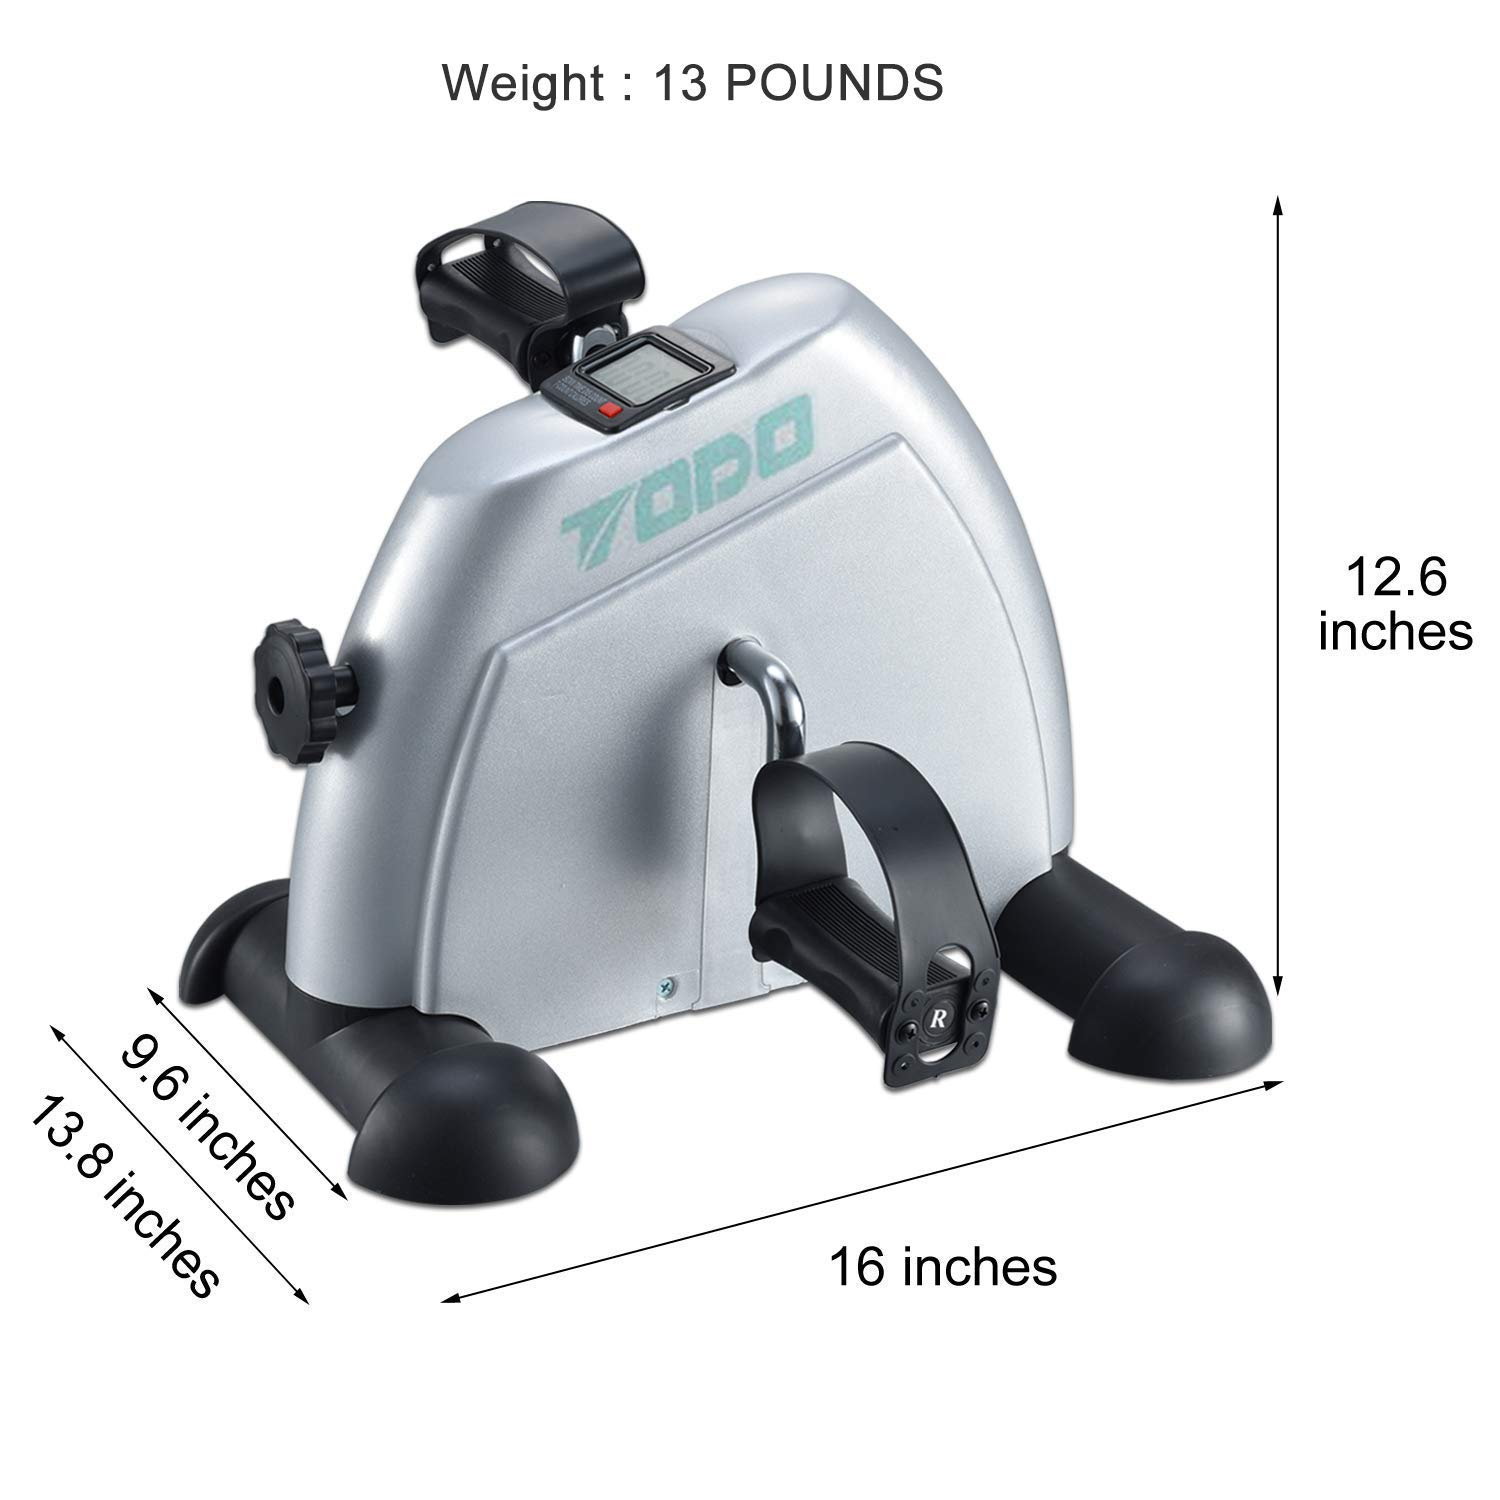 TODO Exercise Bike Pedal Exerciser Foot Peddler Portable Therapy Bicycle with Digital Monitor